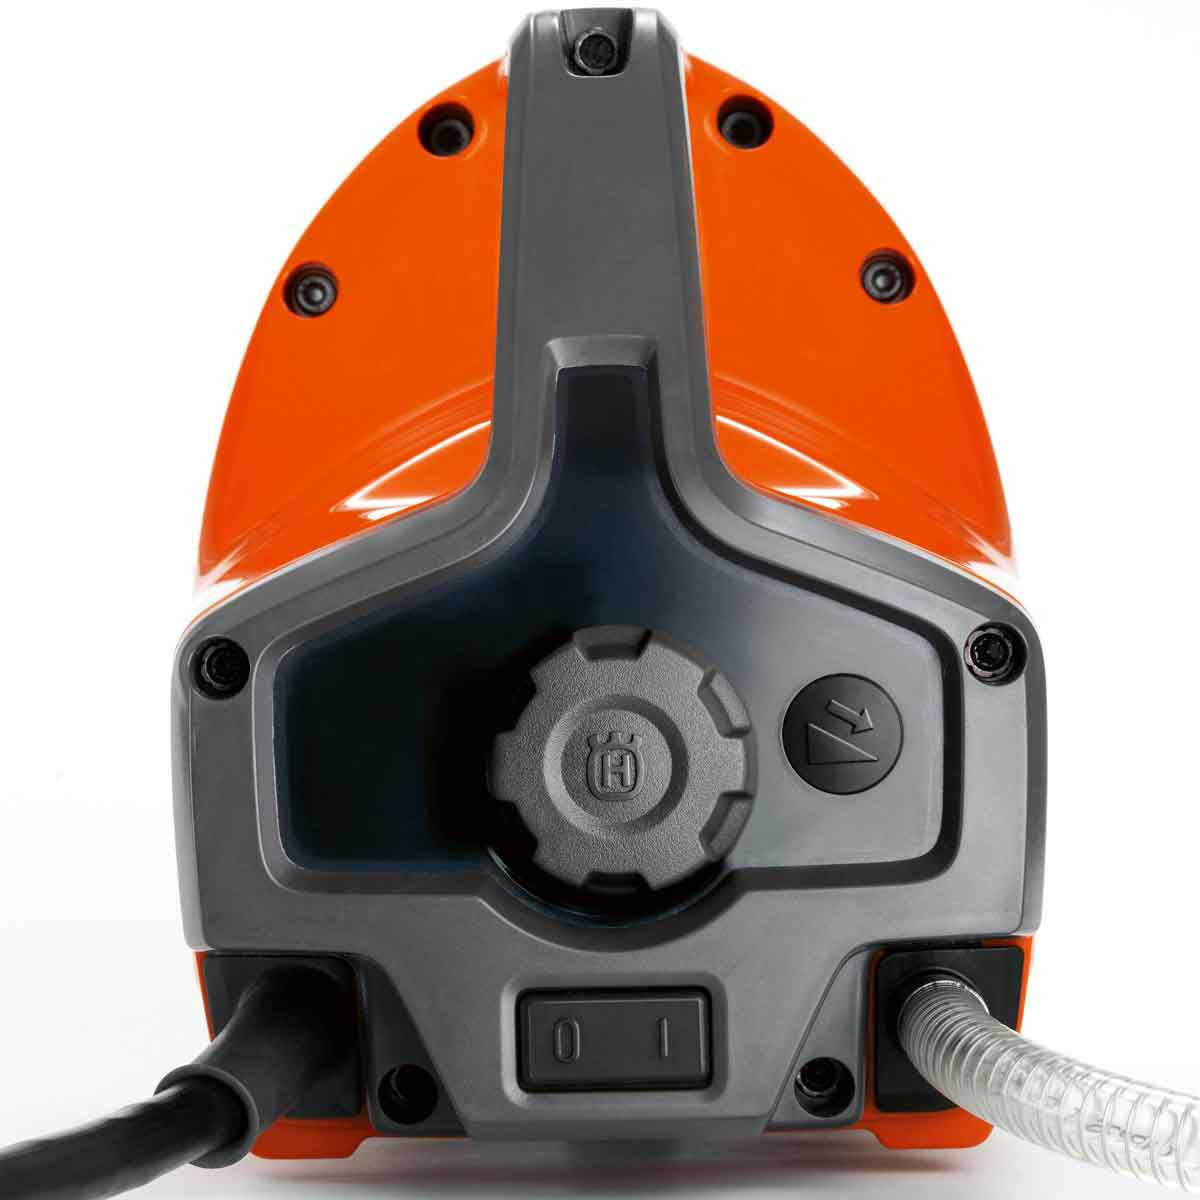 Husqvarna DM650 Motor Drill switch